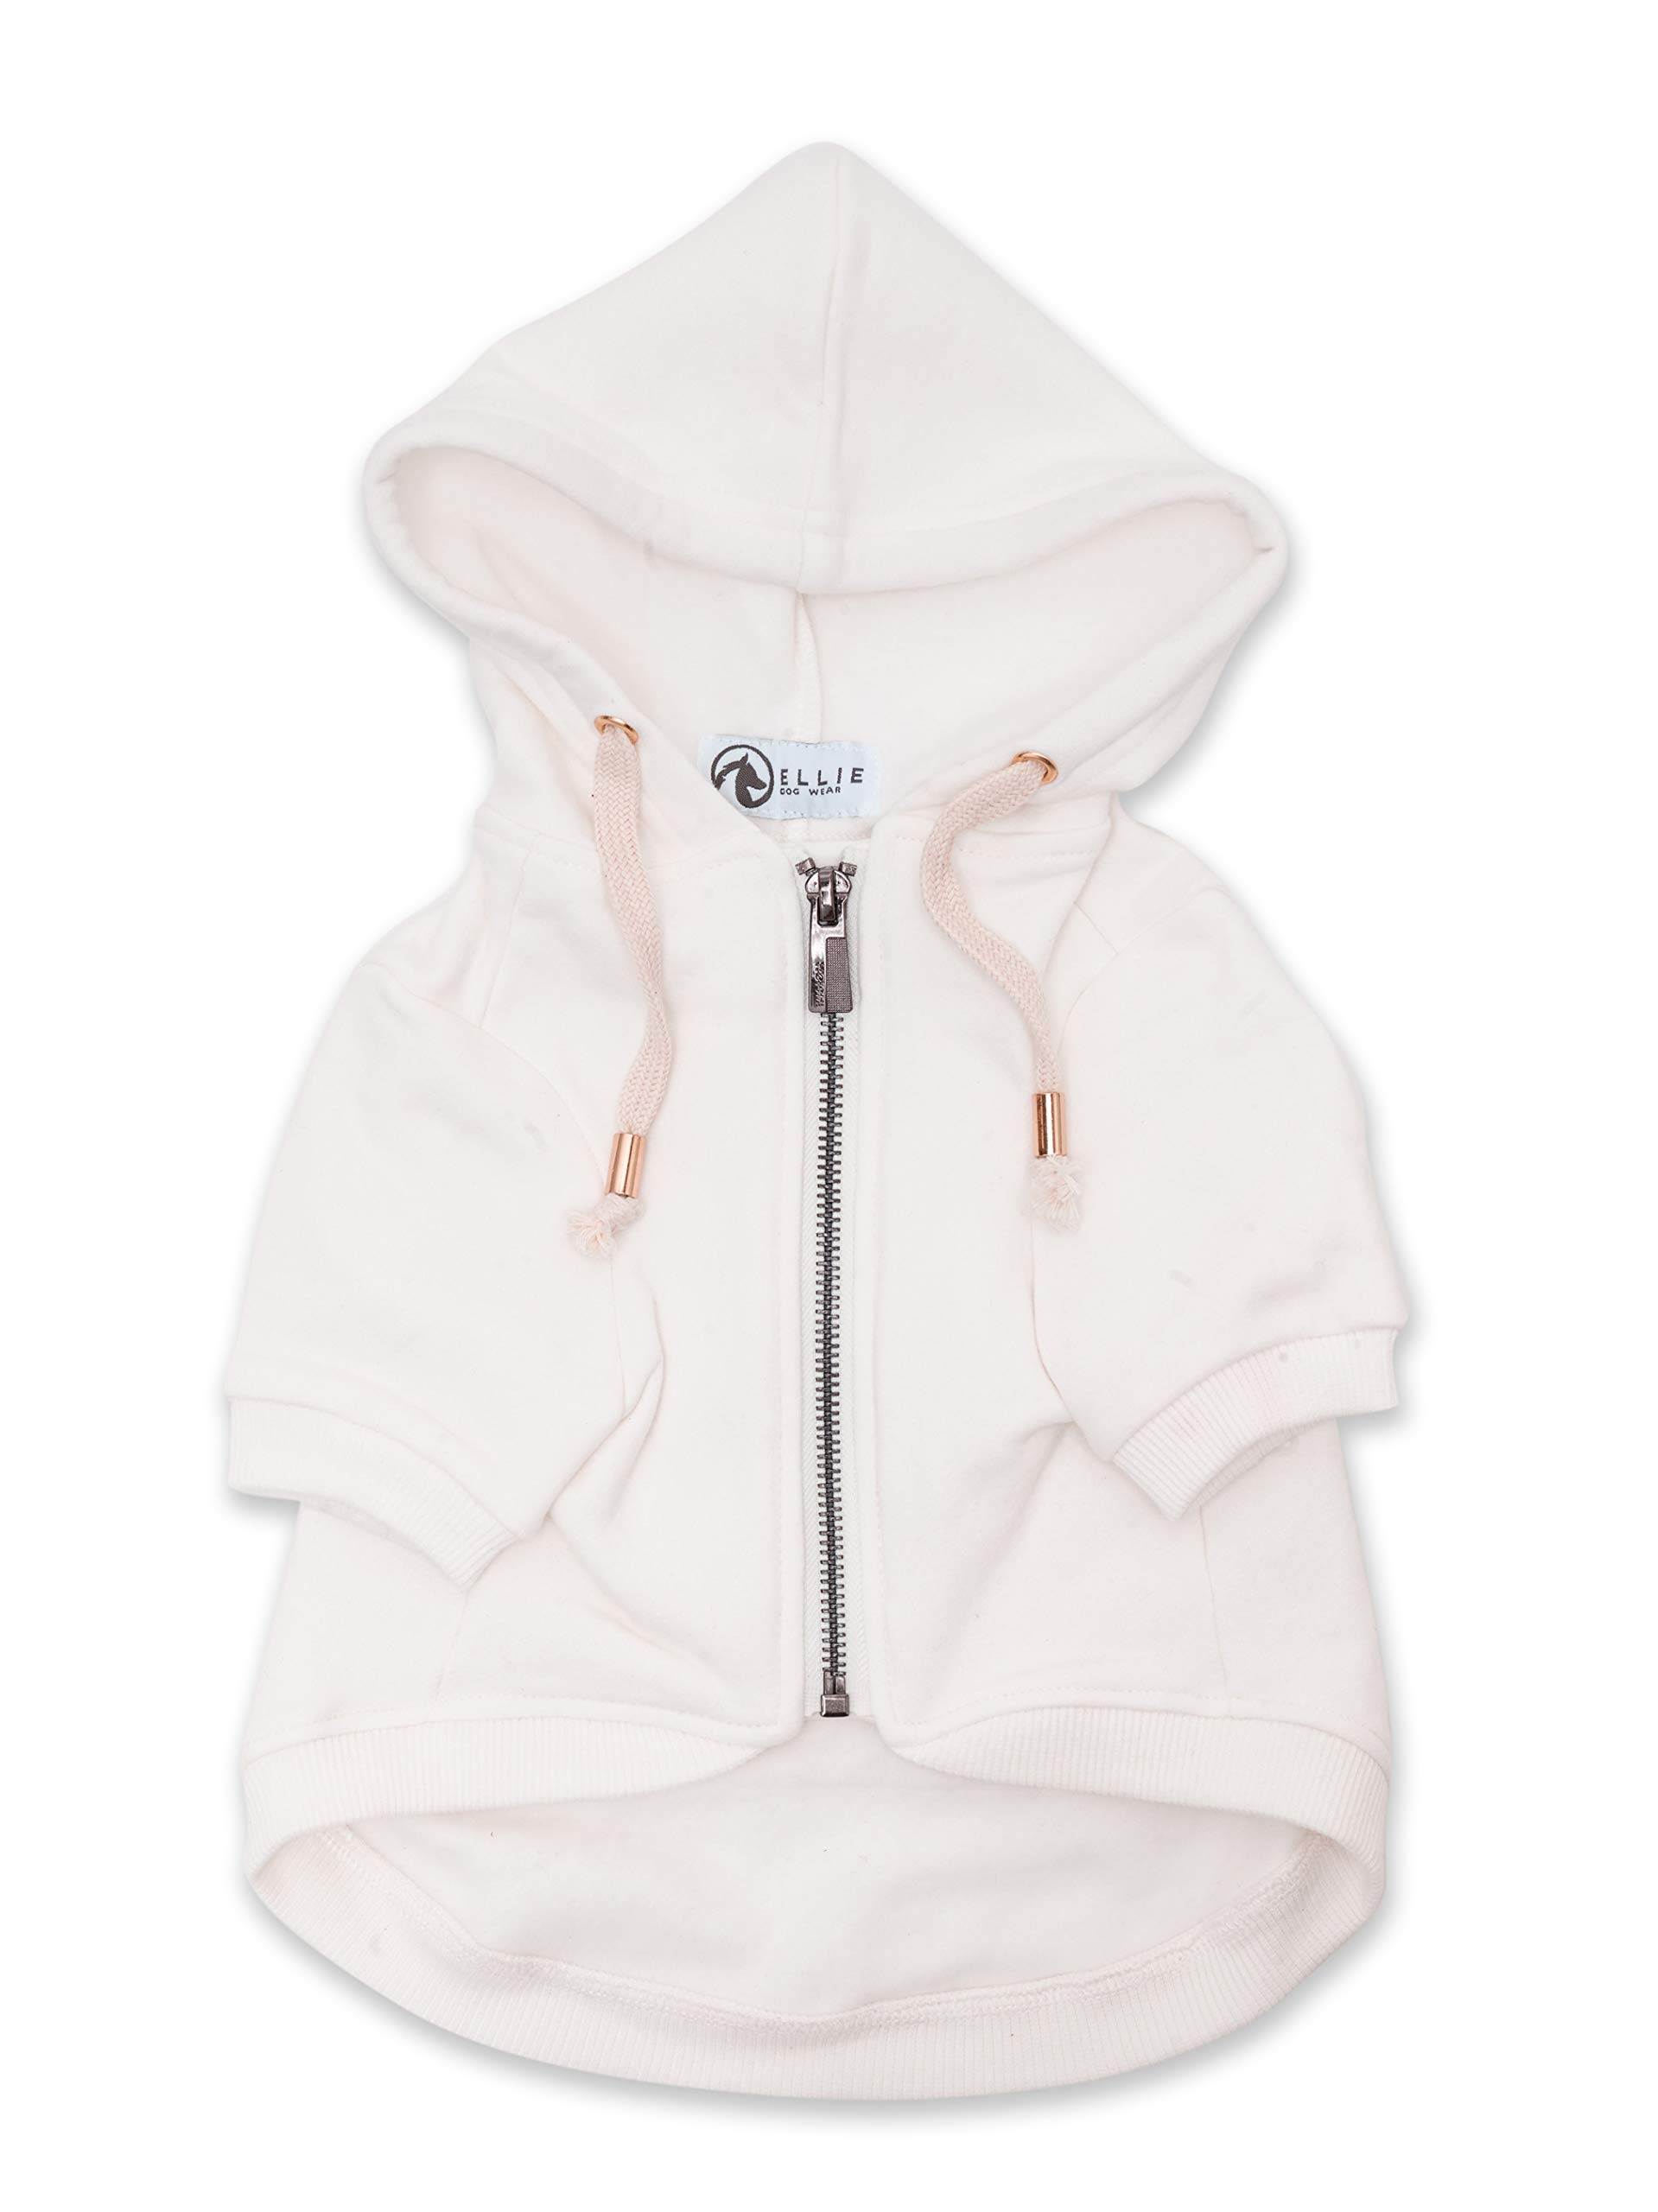 Ellie Dog Wear Adventure Zip Up White Dog Hoodie & Gold Accents with Hook & Loop Pockets and Adjustable Drawstring Hood - XXS to XXL Available - Comfortable & Versatile Dog Hoodies (M)